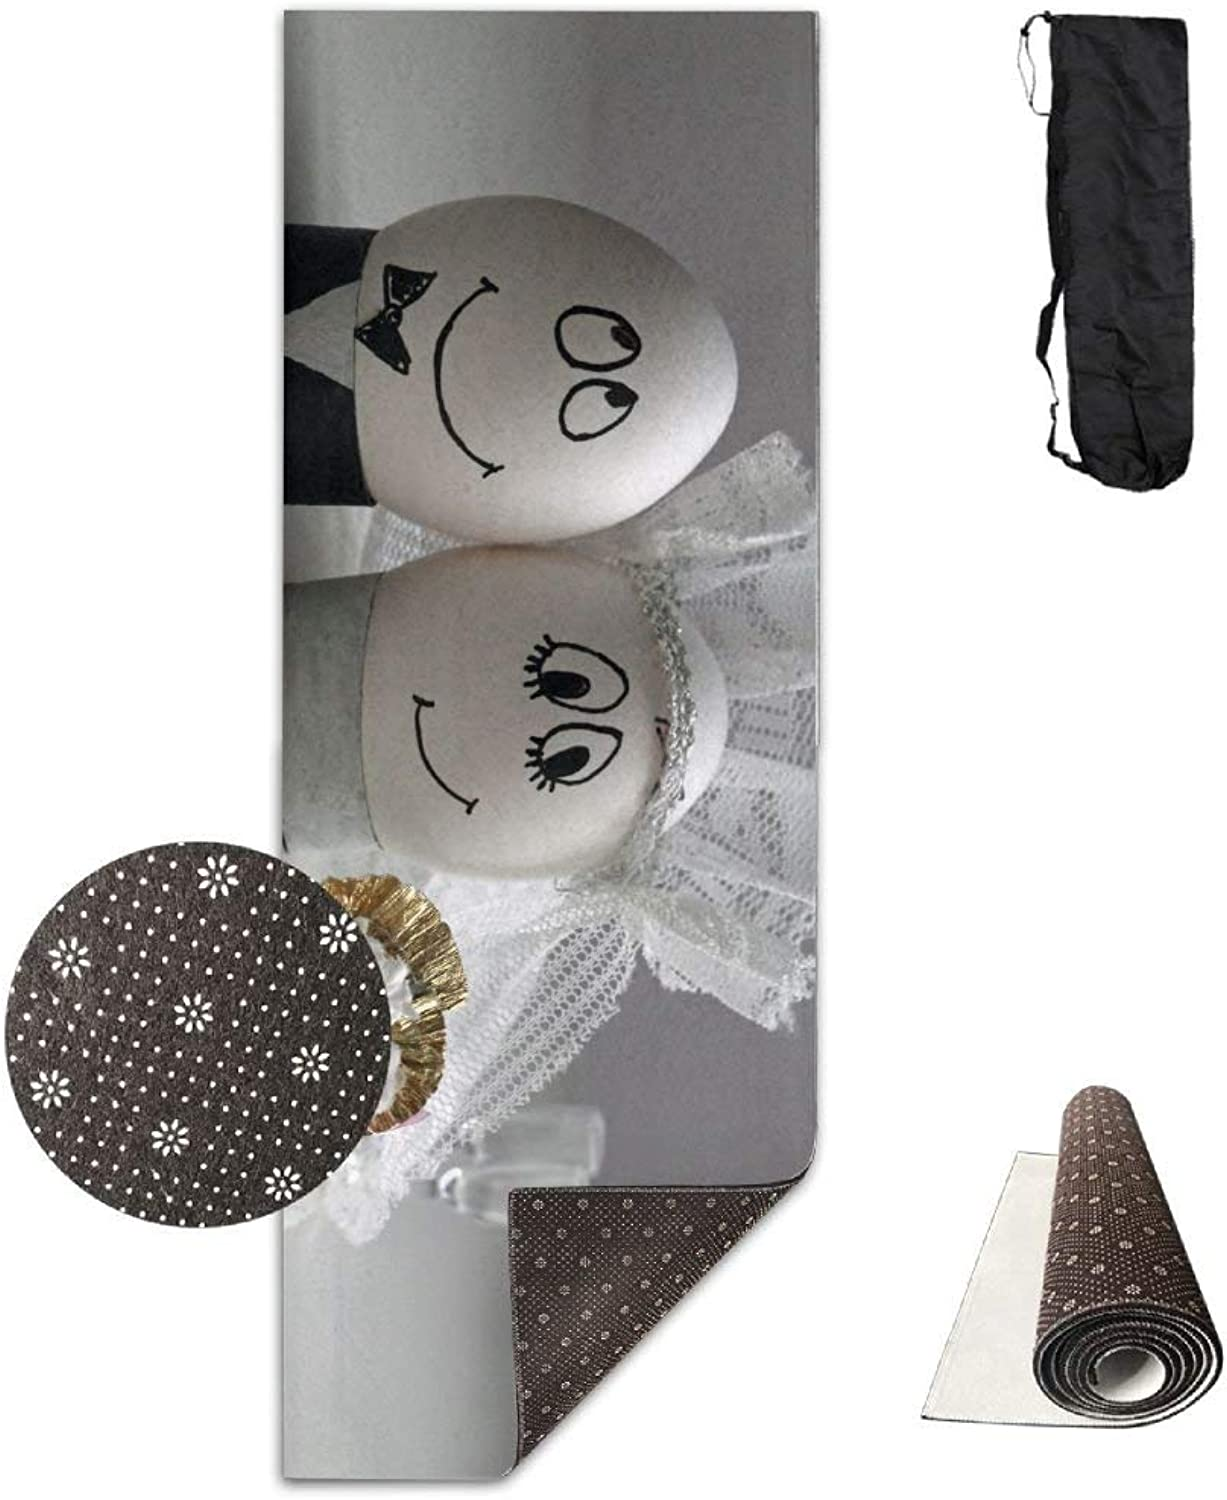 Eggs Wedding Easter Decoration Couple ECO Aqua Power Kinematic Iyengar Kundini Hot Pilates Gymnastics Hatha Yoga Mat and Other Mats That Need to Be Performed On The Ground